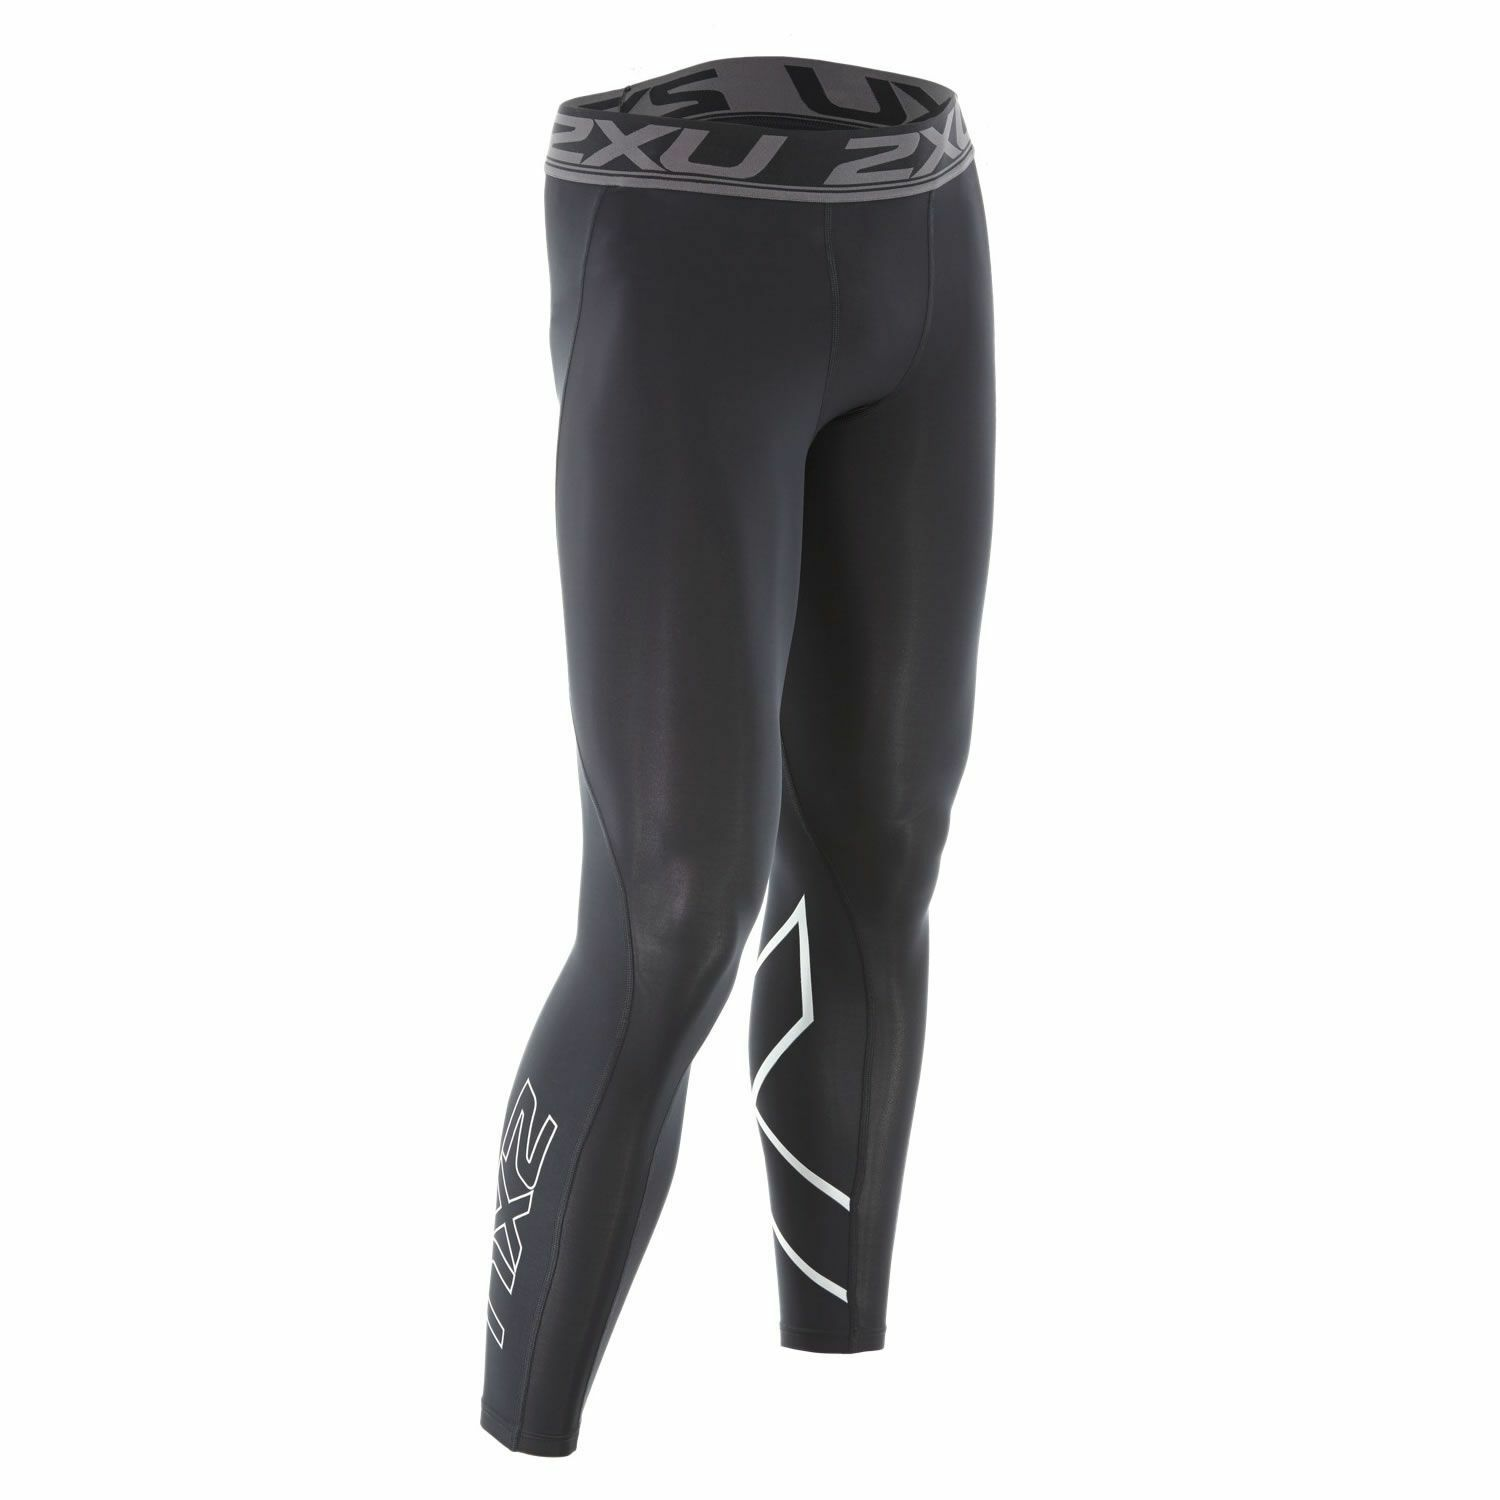 New Tights 2XU Men Accelerate Compression Tights New Elestic Waistband Train Race MA4476b f0011c